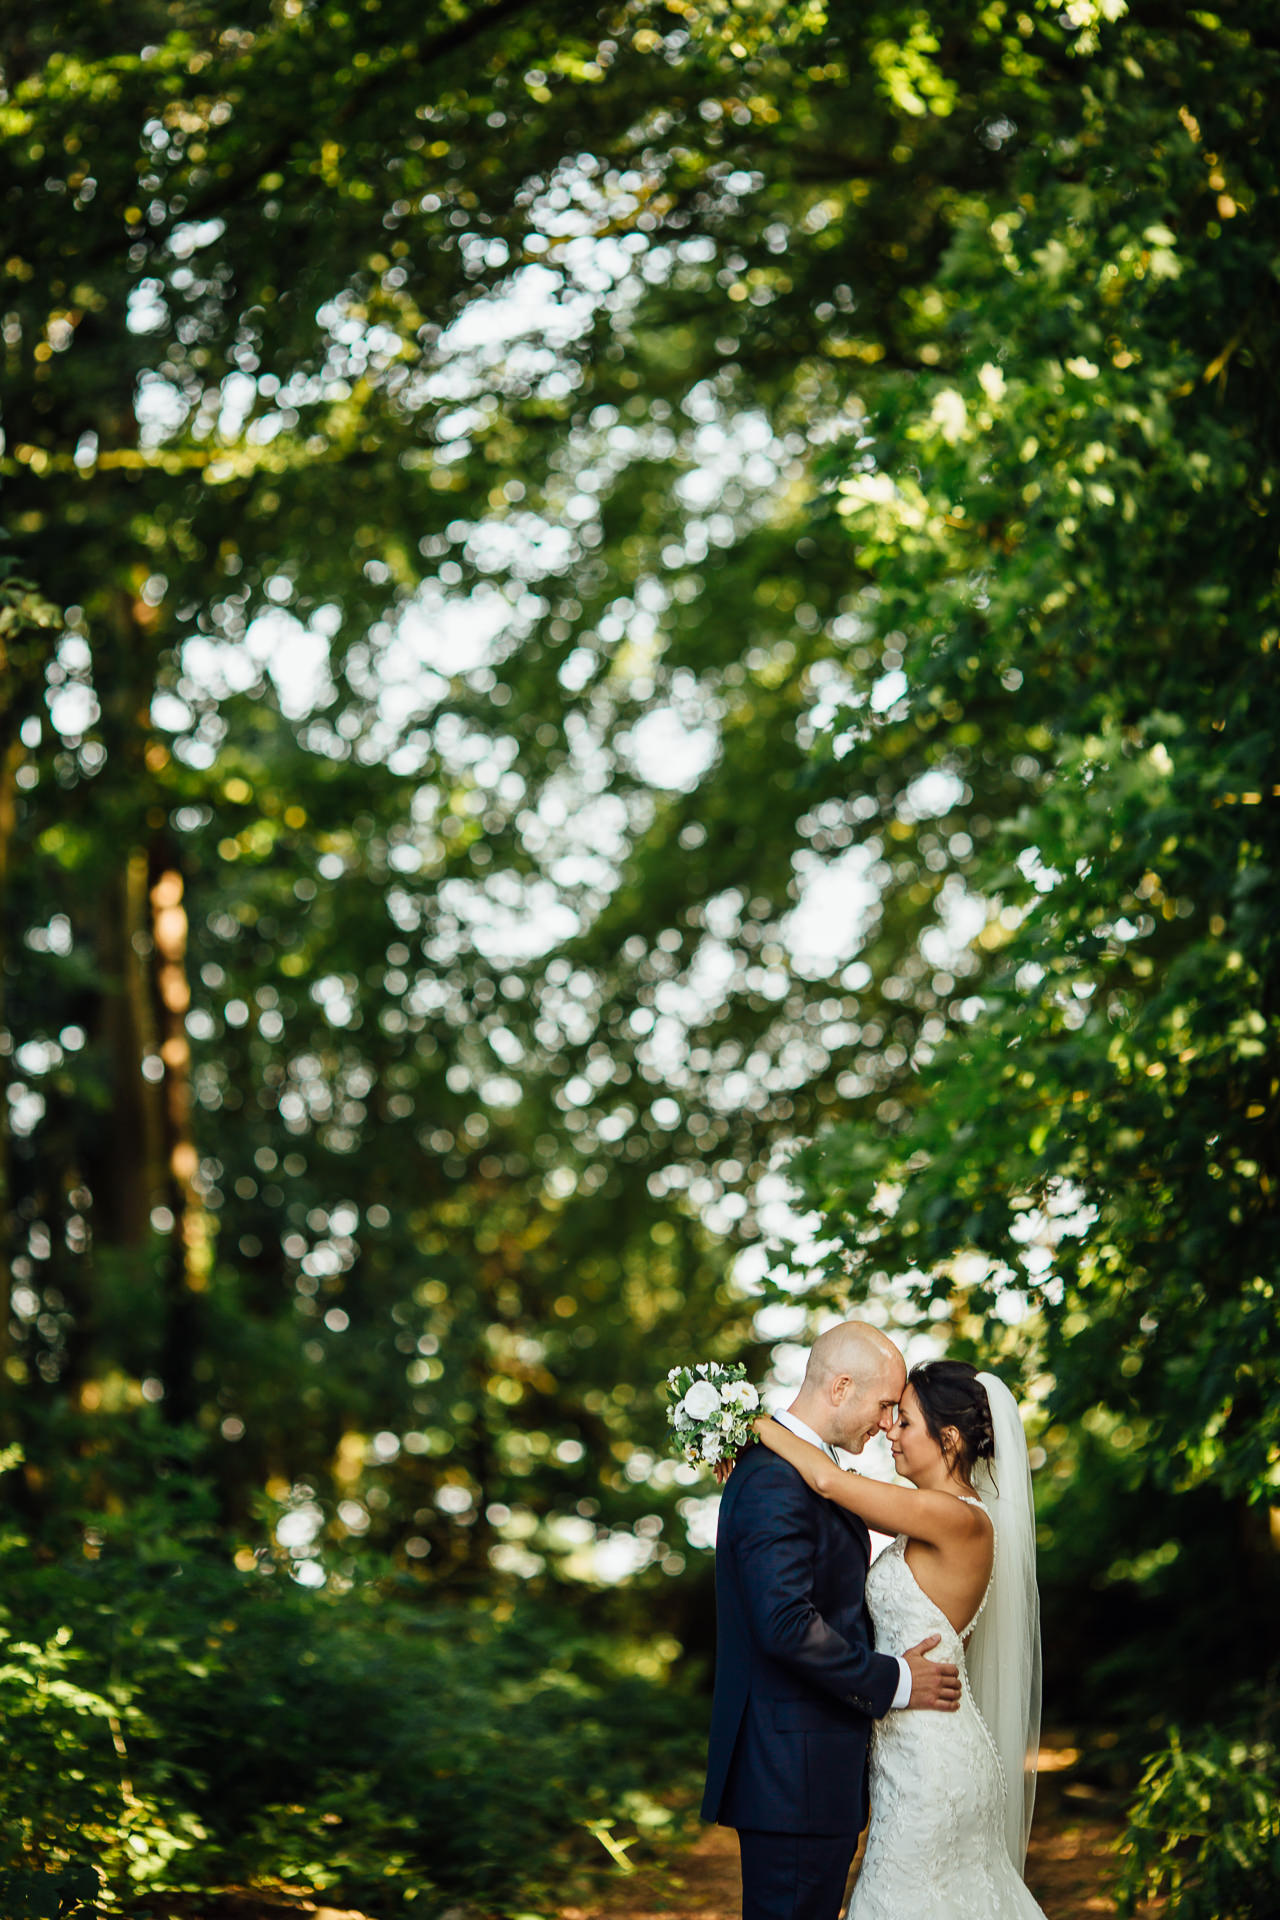 WEDDING PHOTOGRAPHY inglewood manor bride and groom hugging